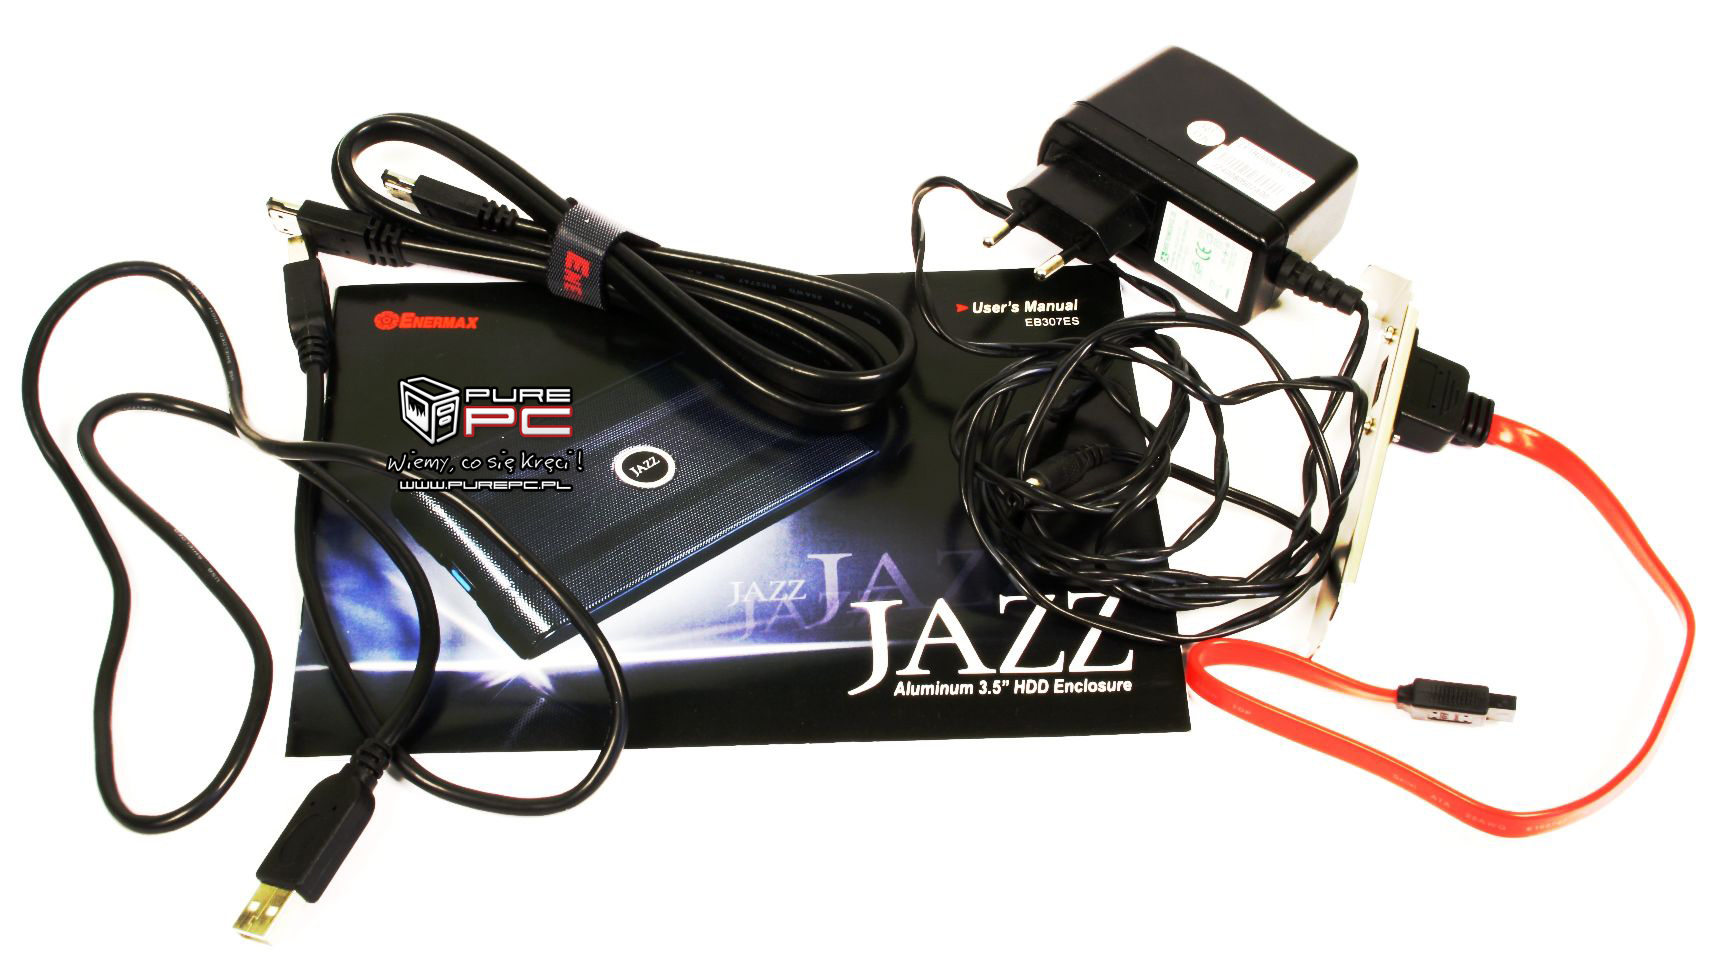 ENERMAX JAZZ DRIVERS FOR WINDOWS 7